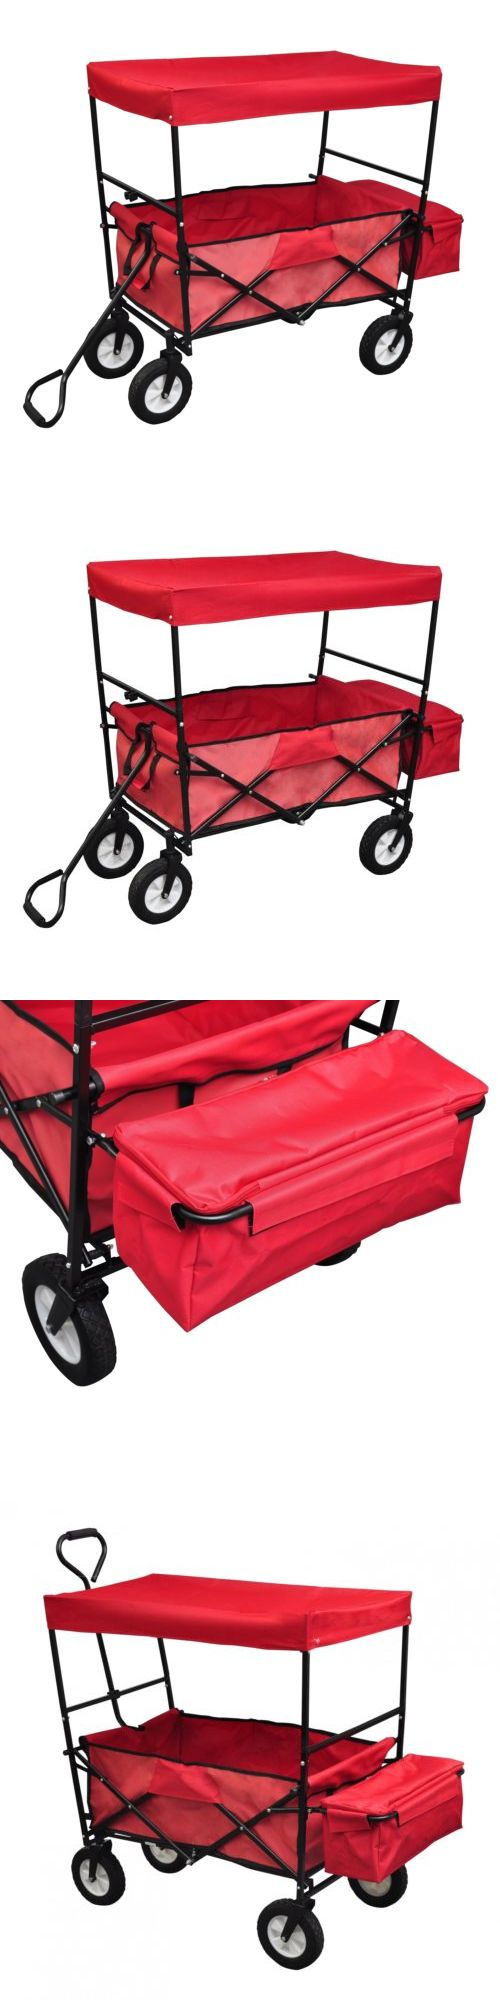 Other Hiking Gear 27363: Collapsible Folding Wagon Cart W/Canopy Outdoor  Utility Garden Beach